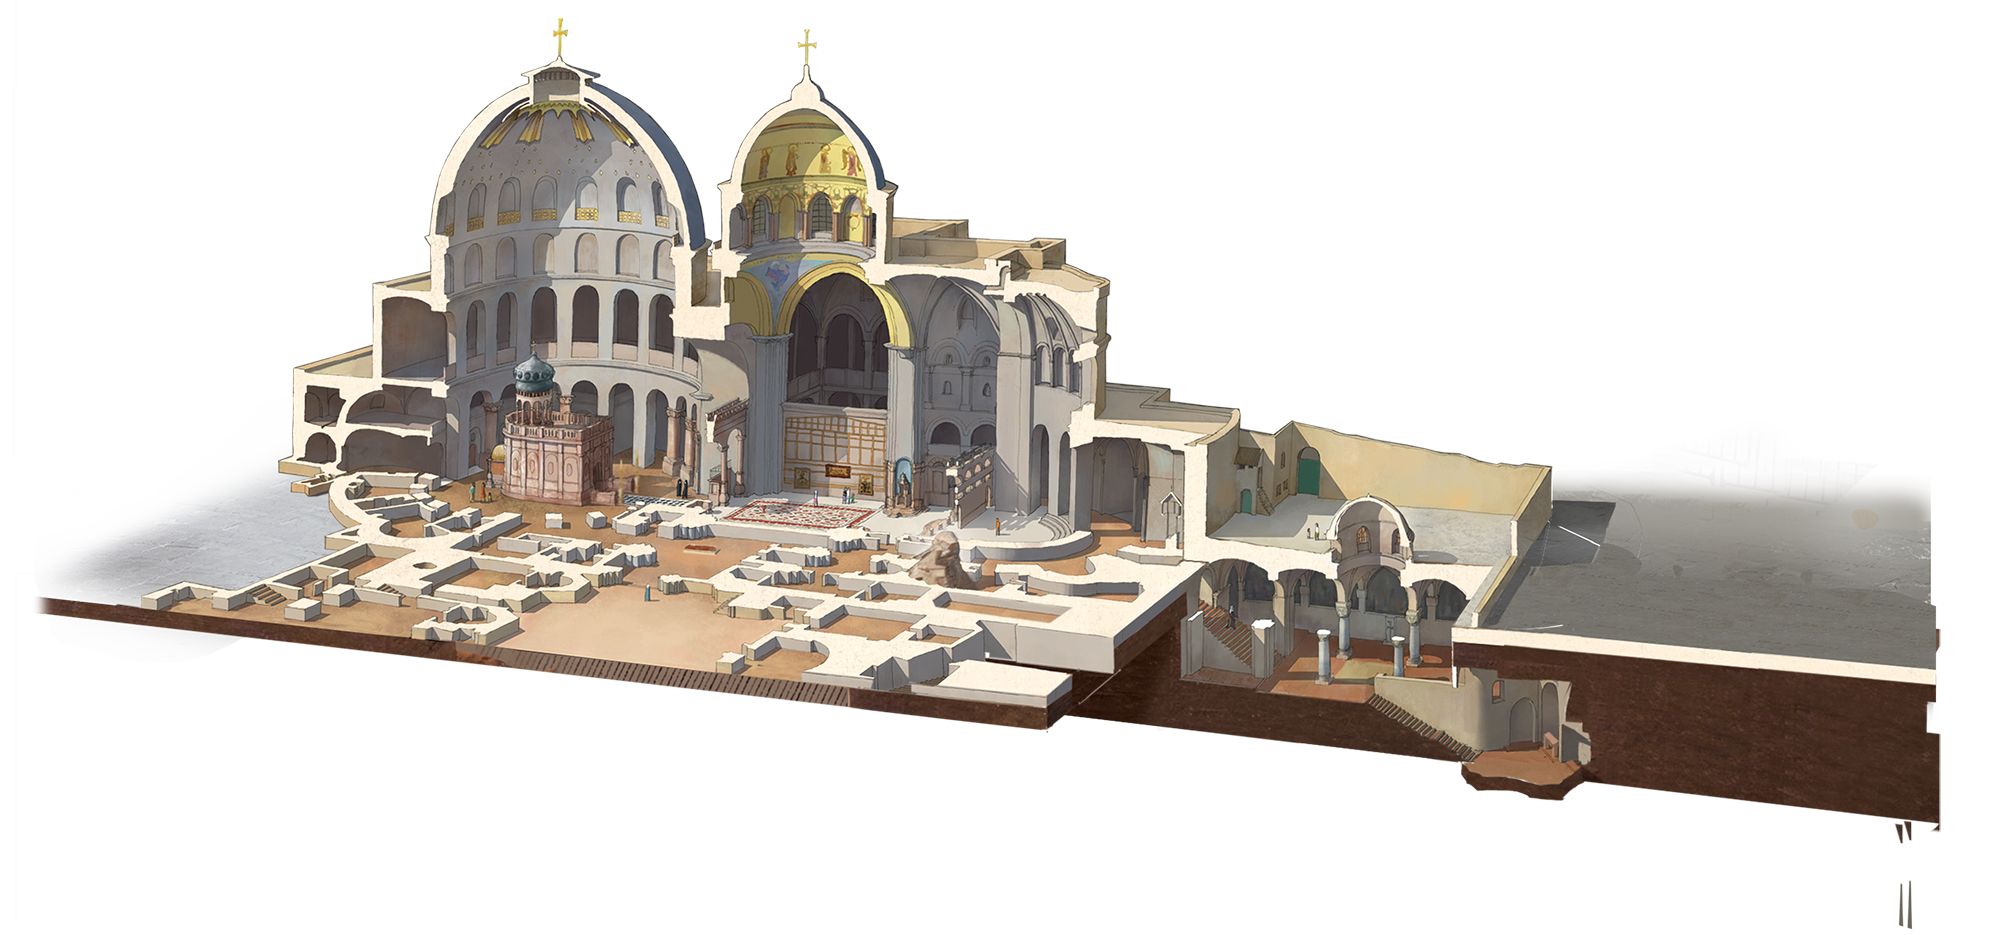 Jerusalem drawing architecture byzantine. See how jesus burial